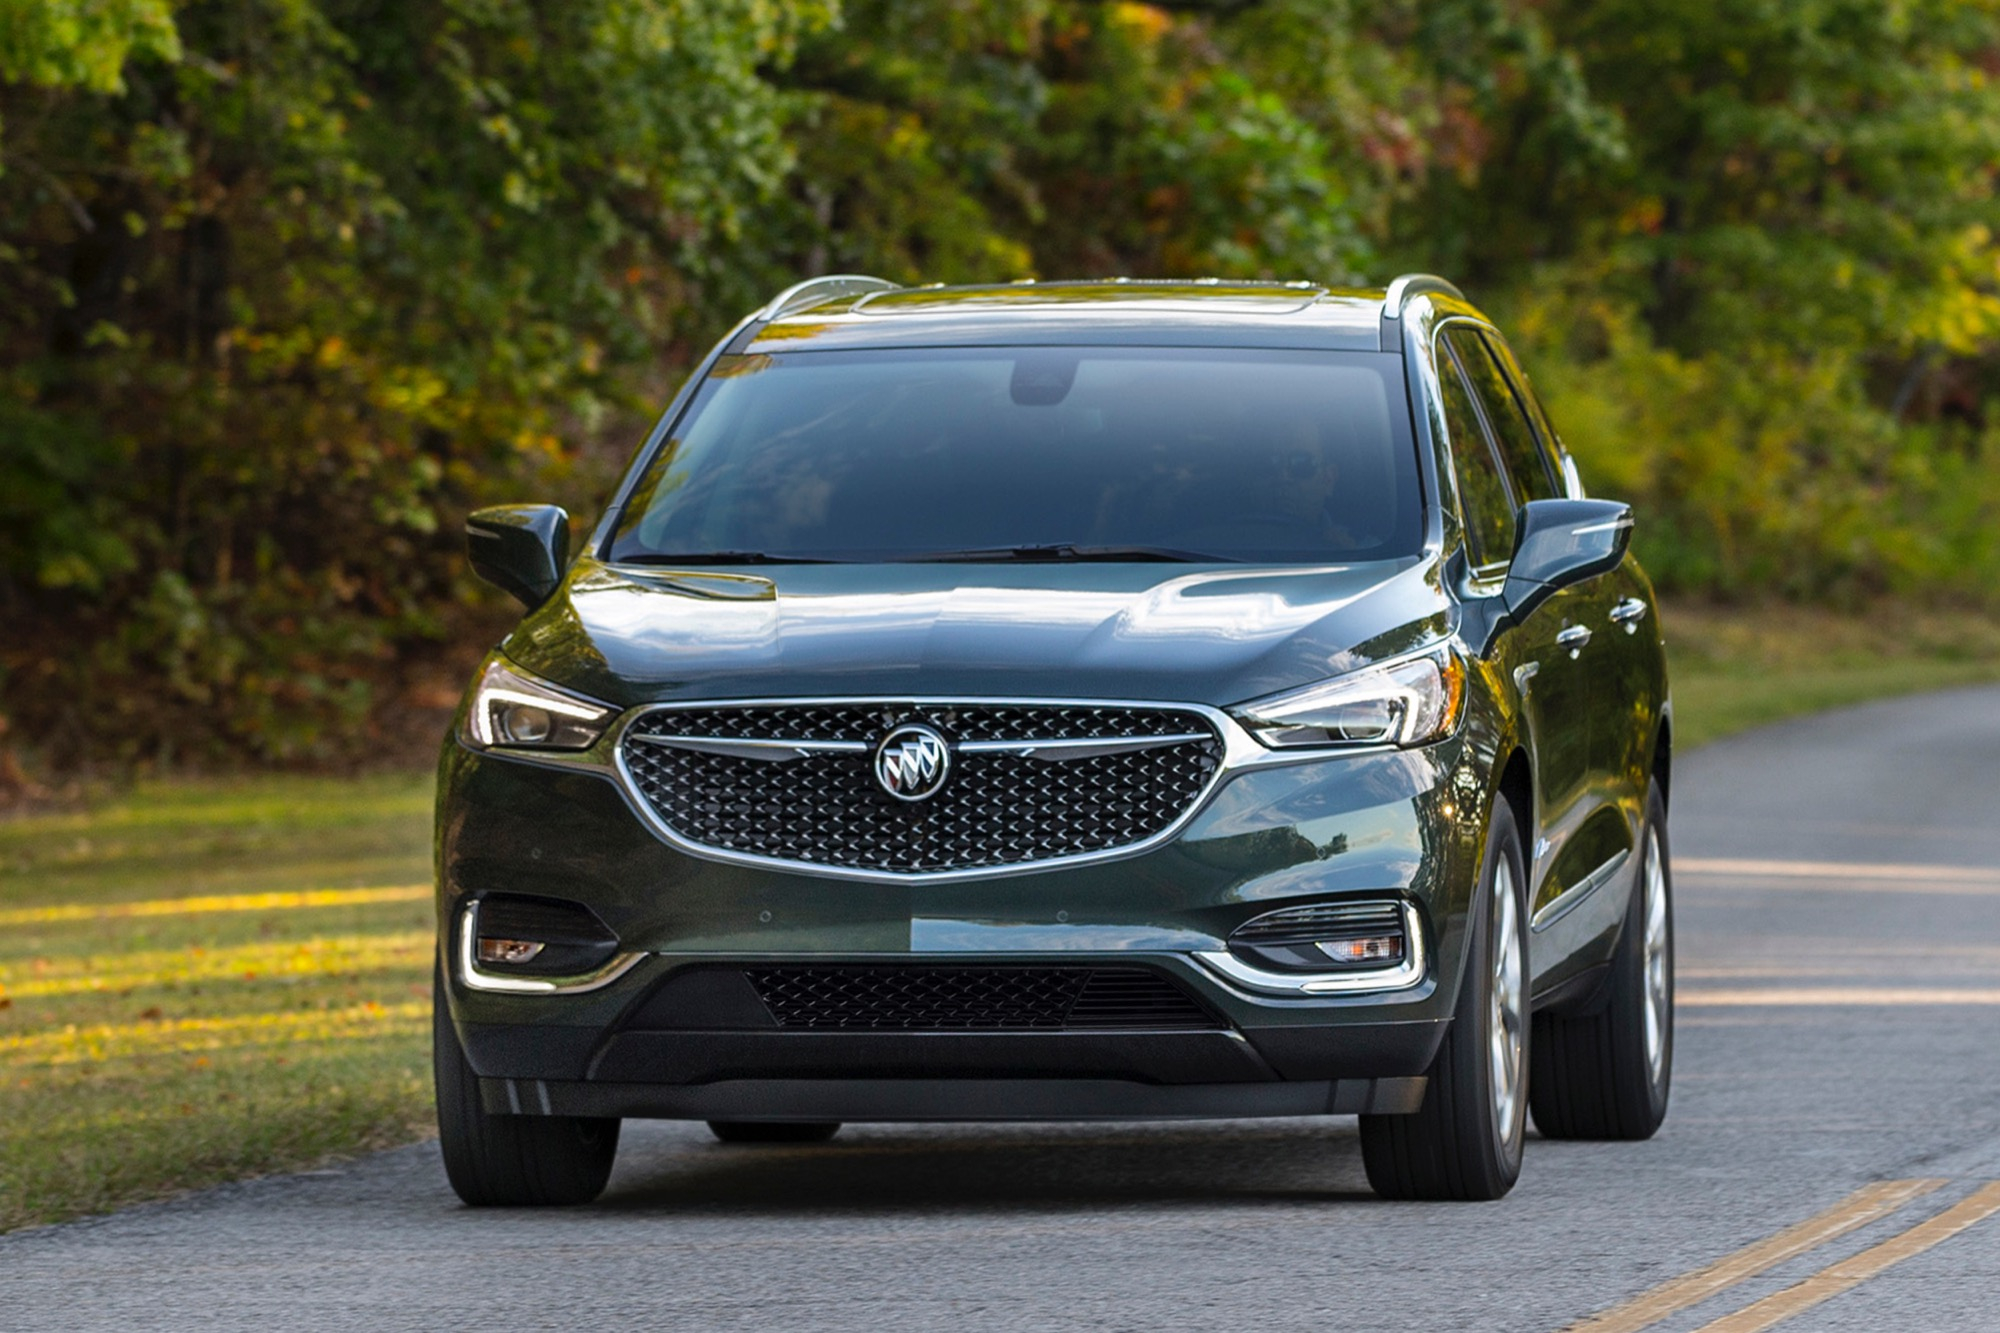 Buyers Don't Care That The Buick Enclave Doesn't Have The New 2022 Buick Lucerne Owners Manual, Generations, Upgrades